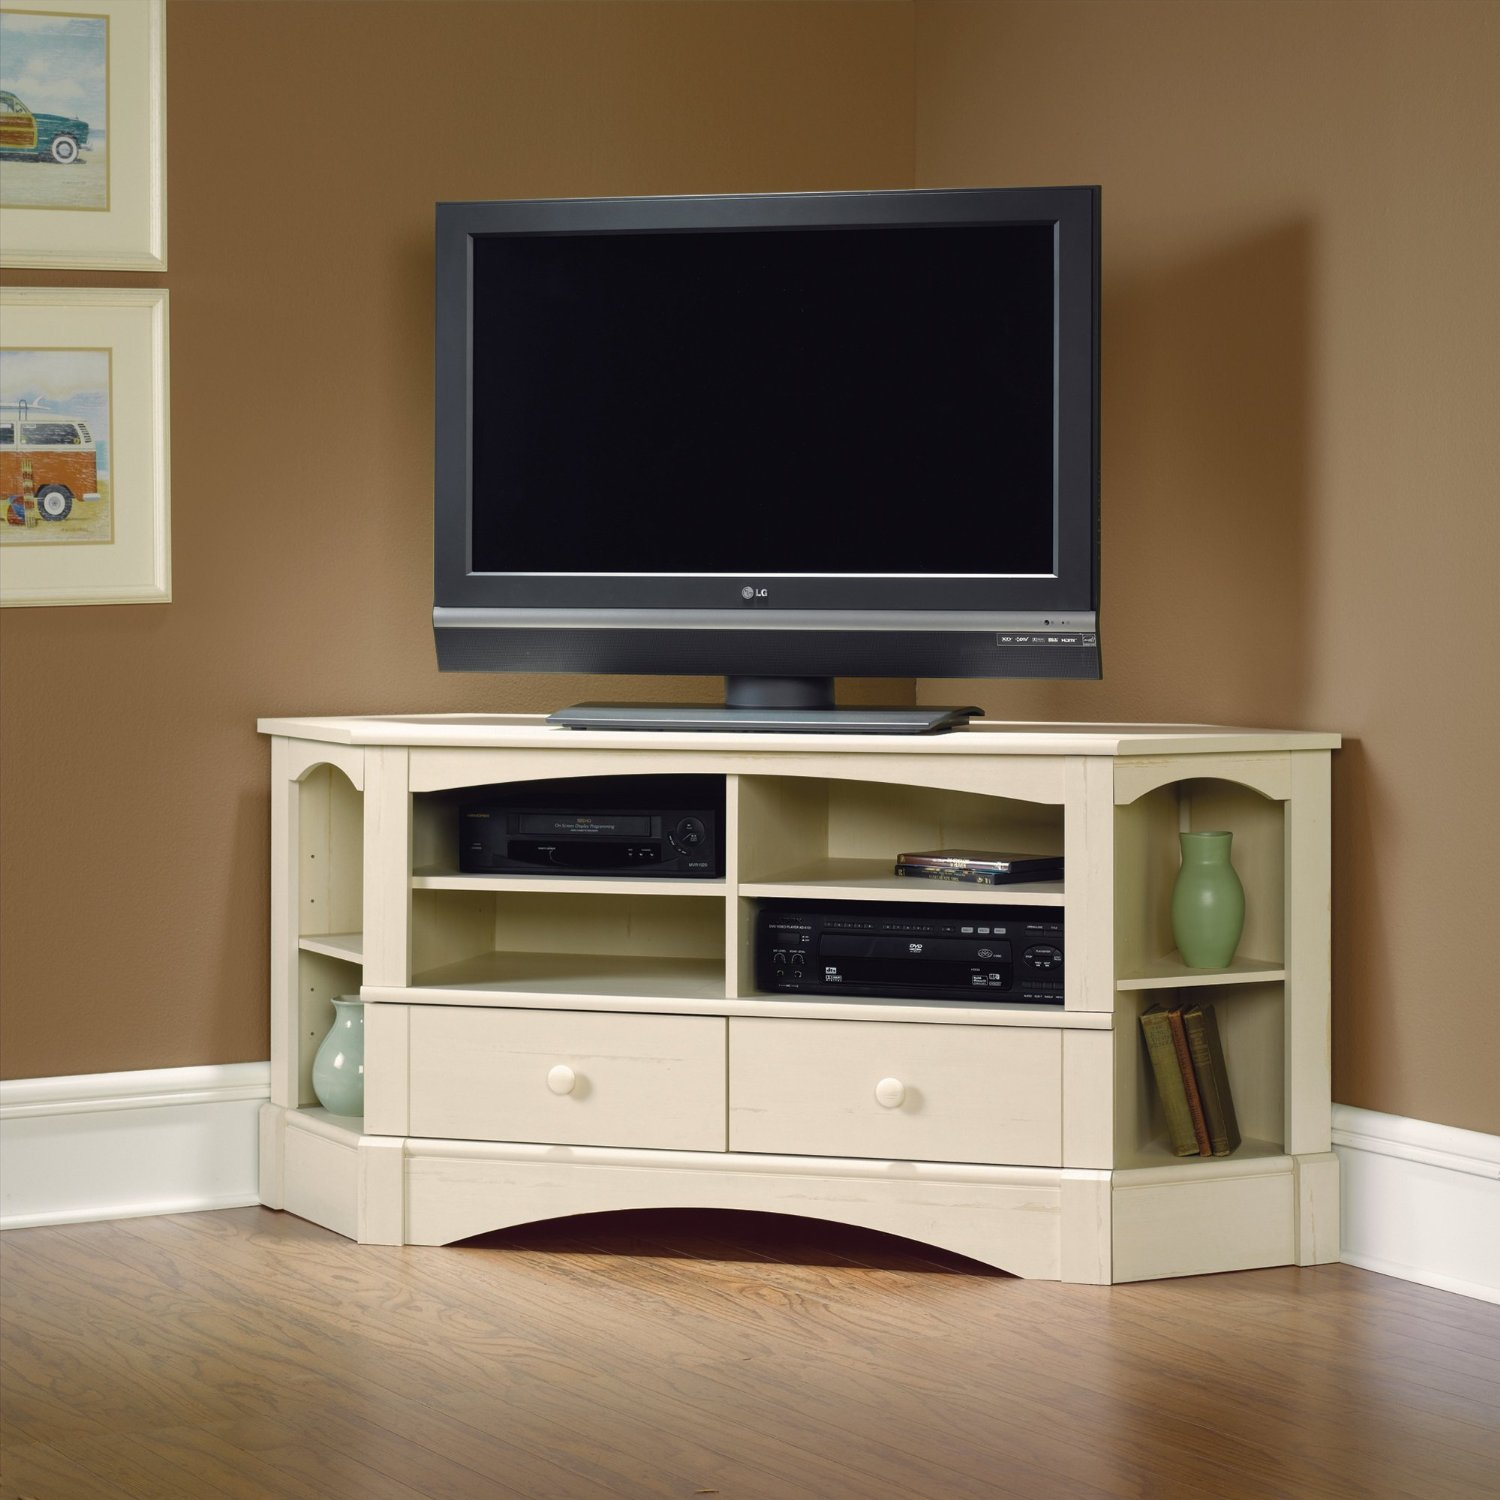 Diy Small Entertainment Center New Small Entertainment Center For Bedroom Rf77 Roccommunity